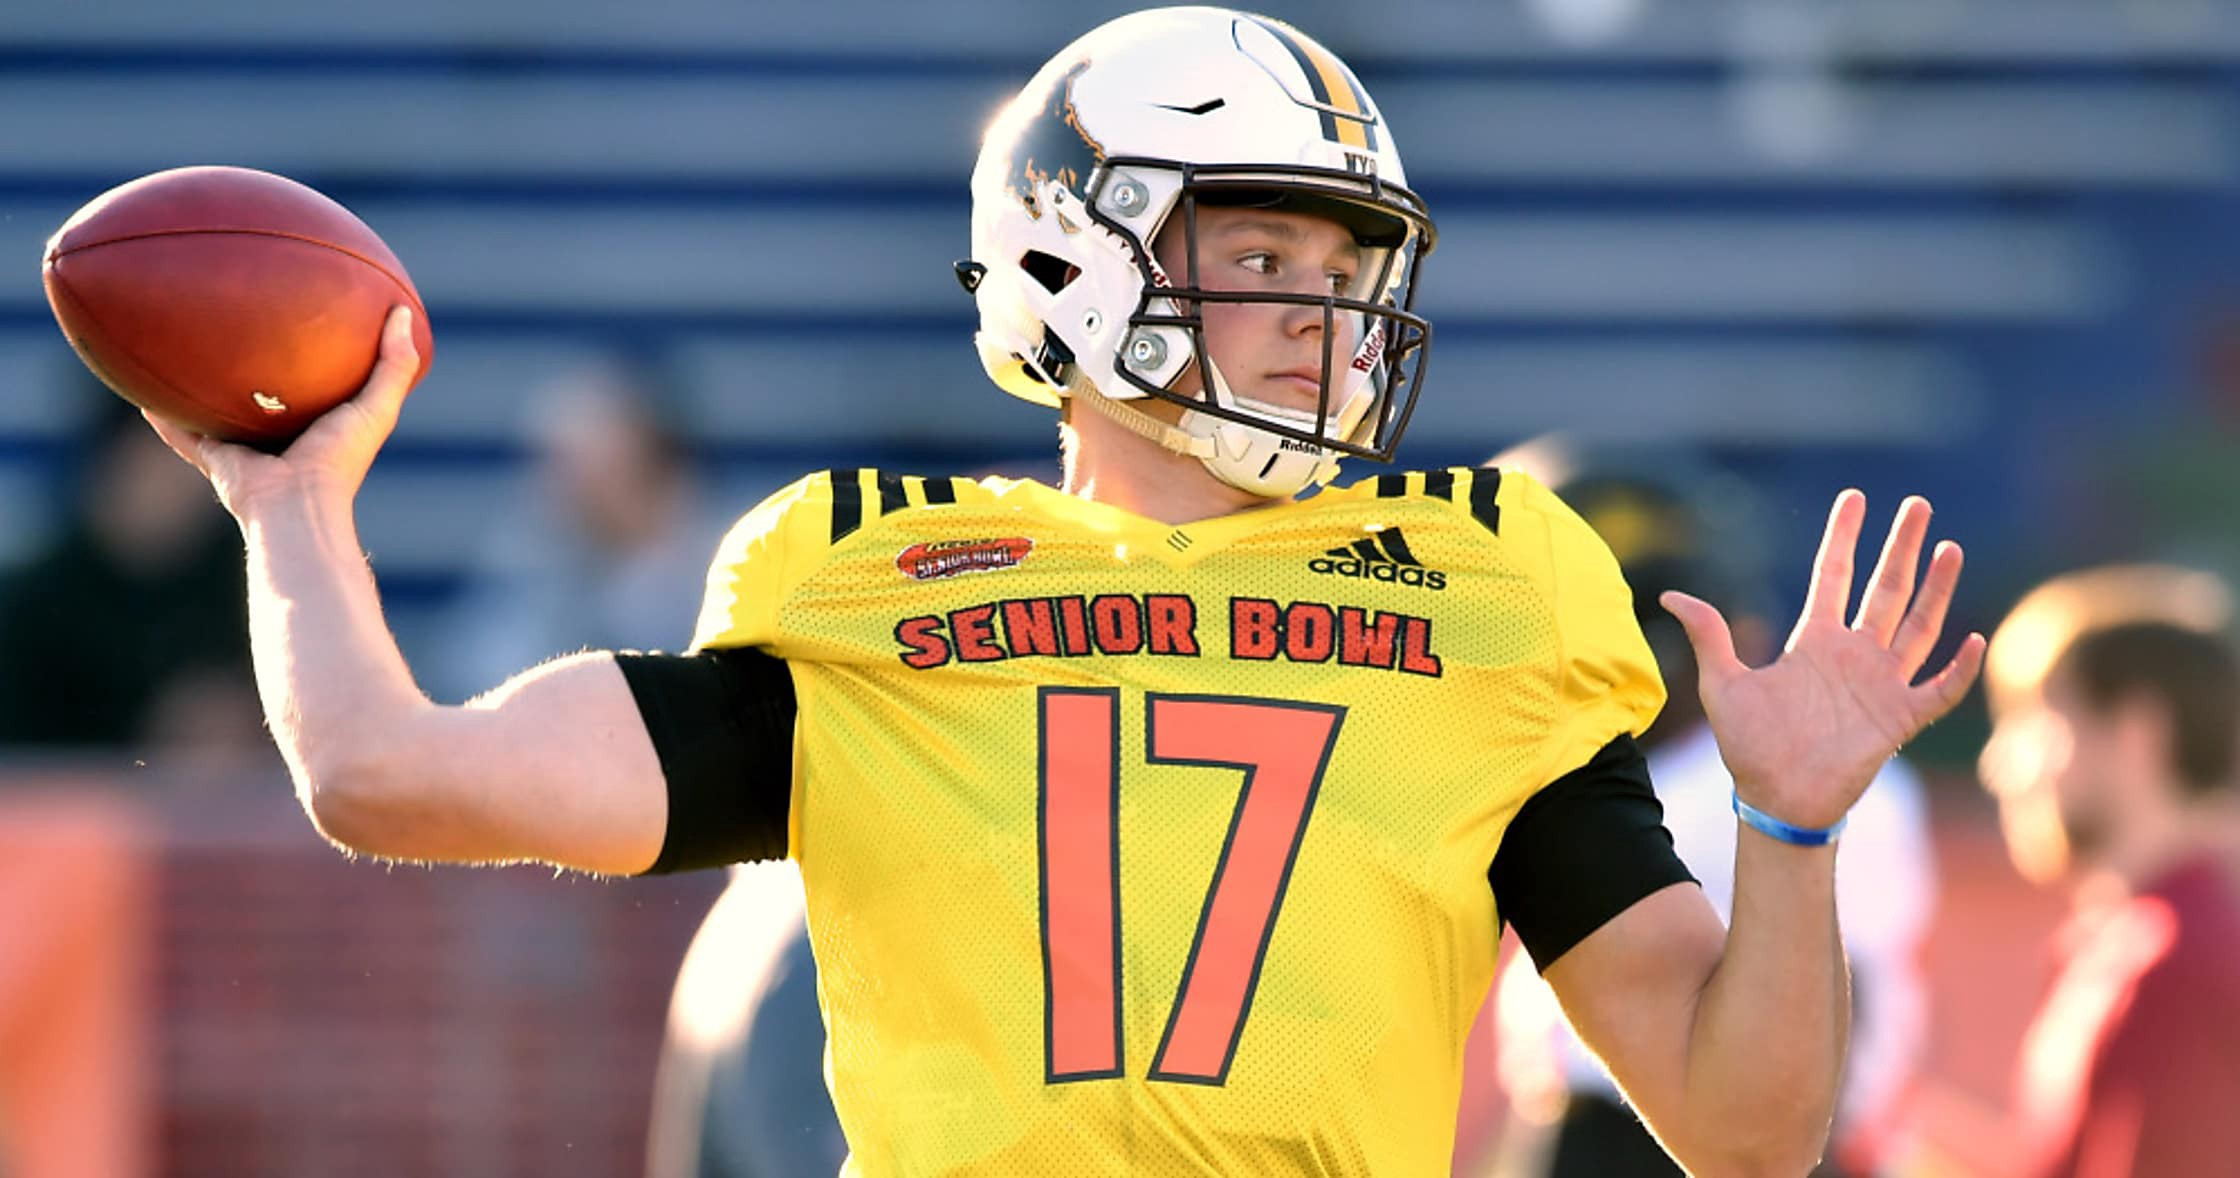 ba7d67c7c02 Wyoming s Josh Allen is the most divisive prospect of this draft season.  The gigantic quarterback has the tools NFL teams crave  Size